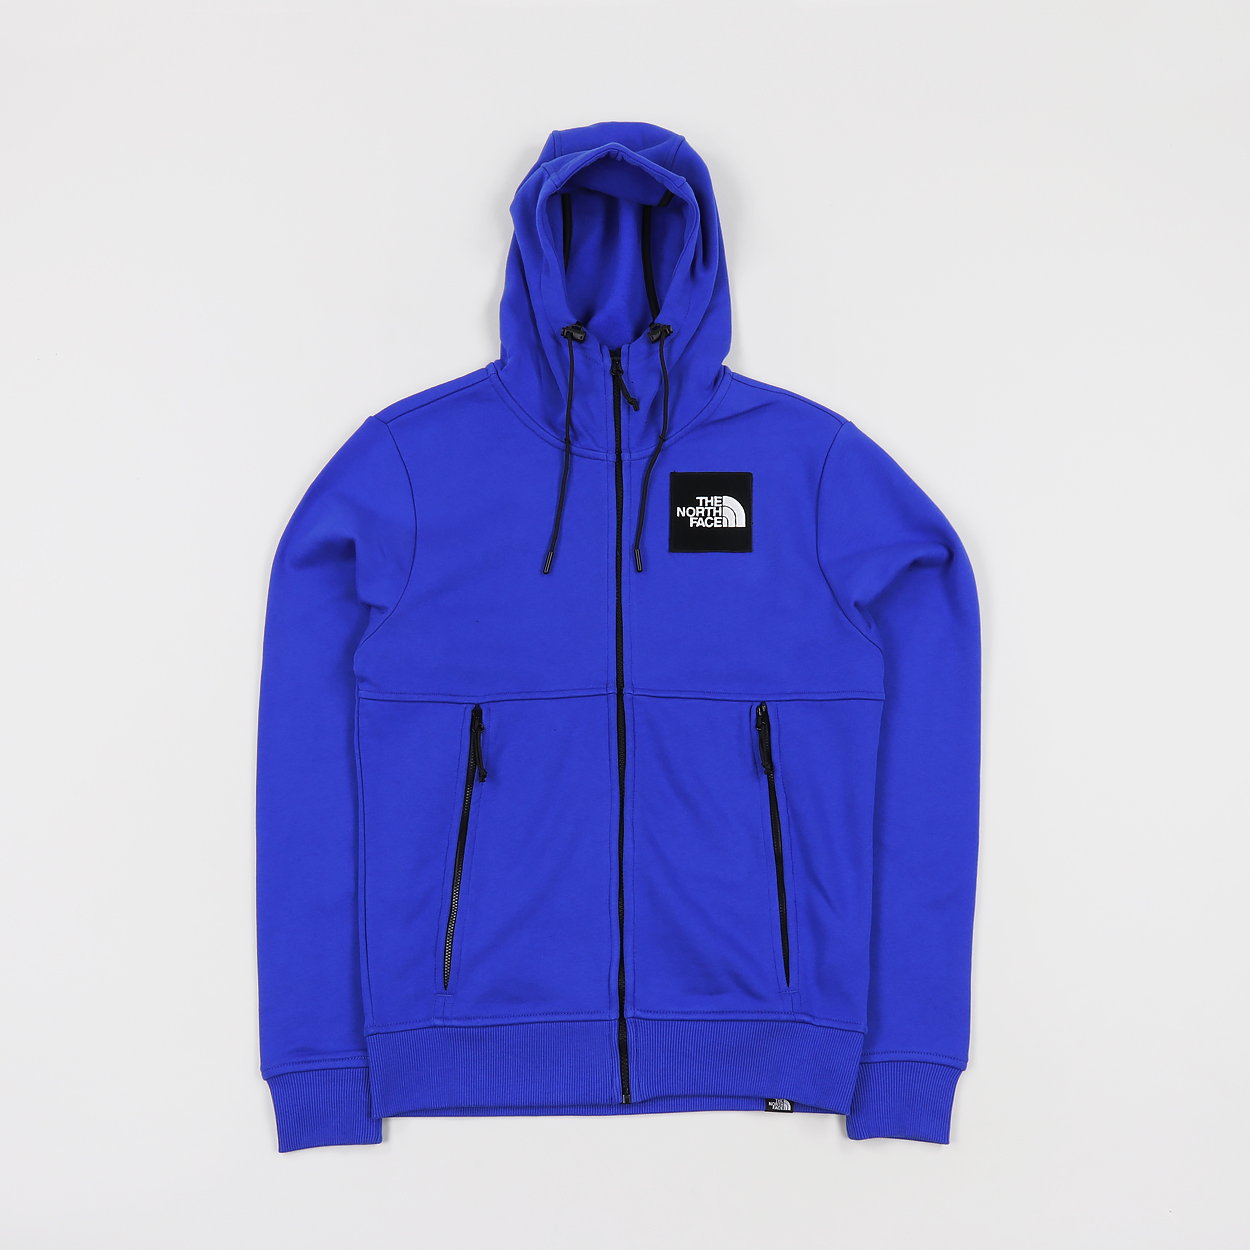 4a3402e8a5d The North Face Black Label Fine Full Zip Hoodie Bright Cobalt £70.00